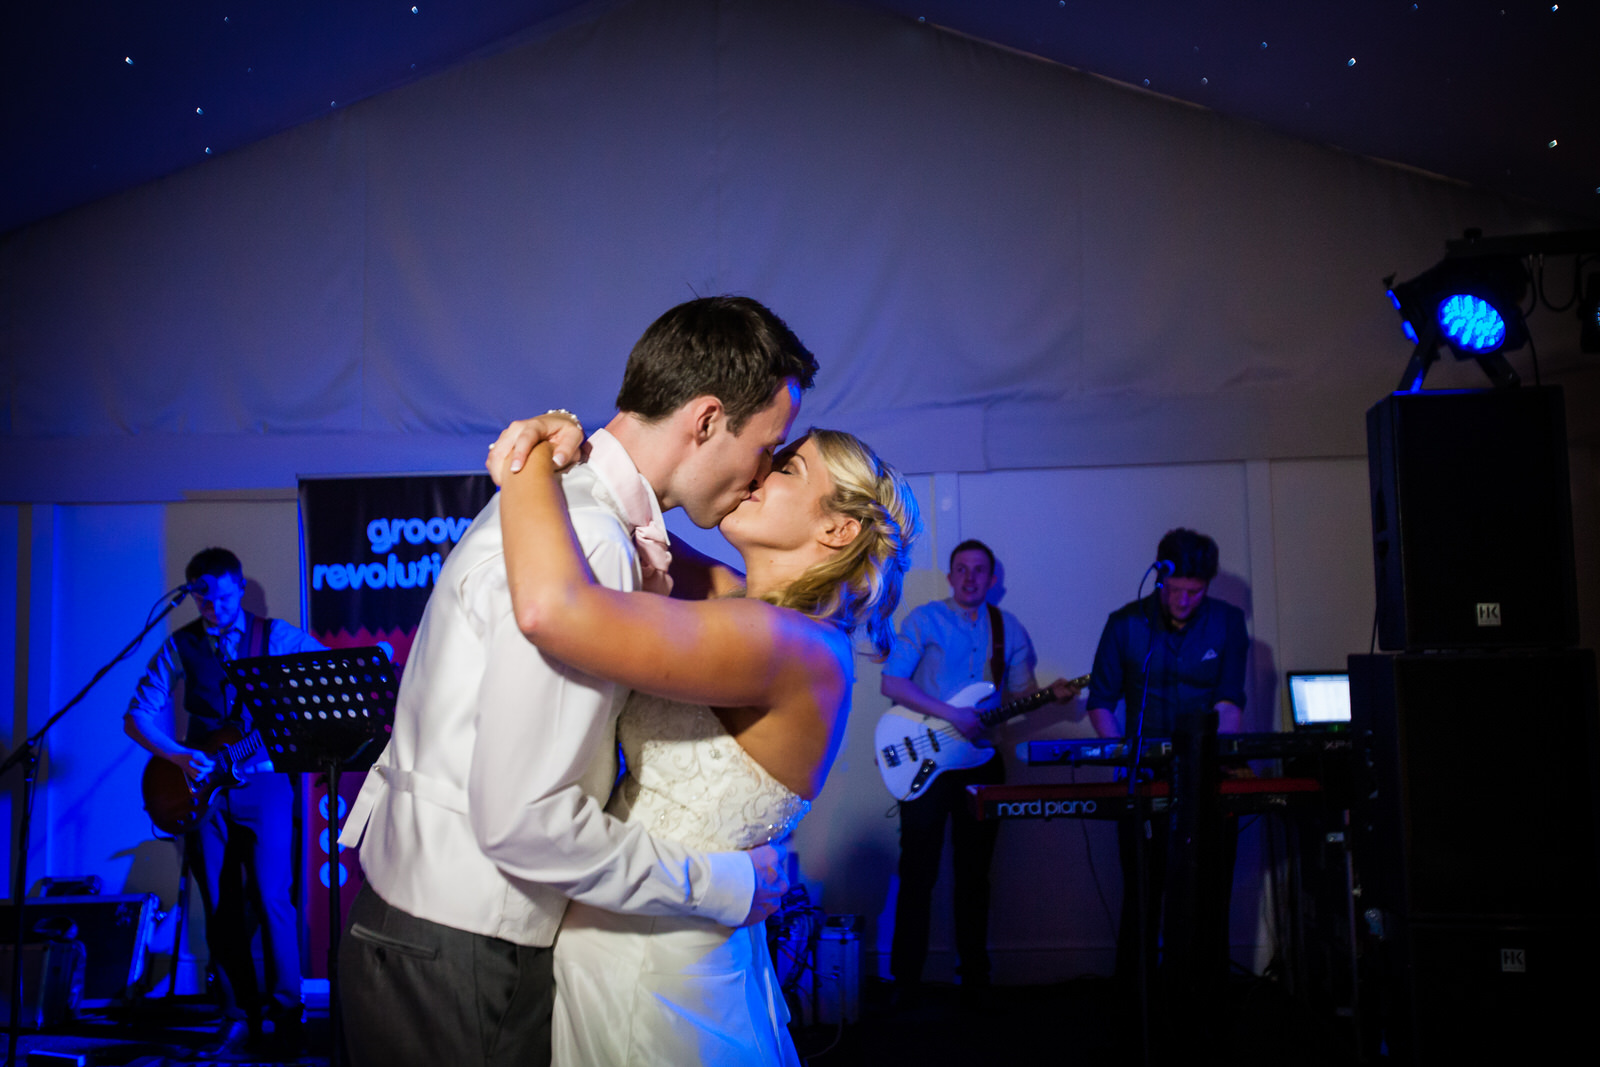 groovy revolution, combermere abbey wedding - shropshire wedding supplier